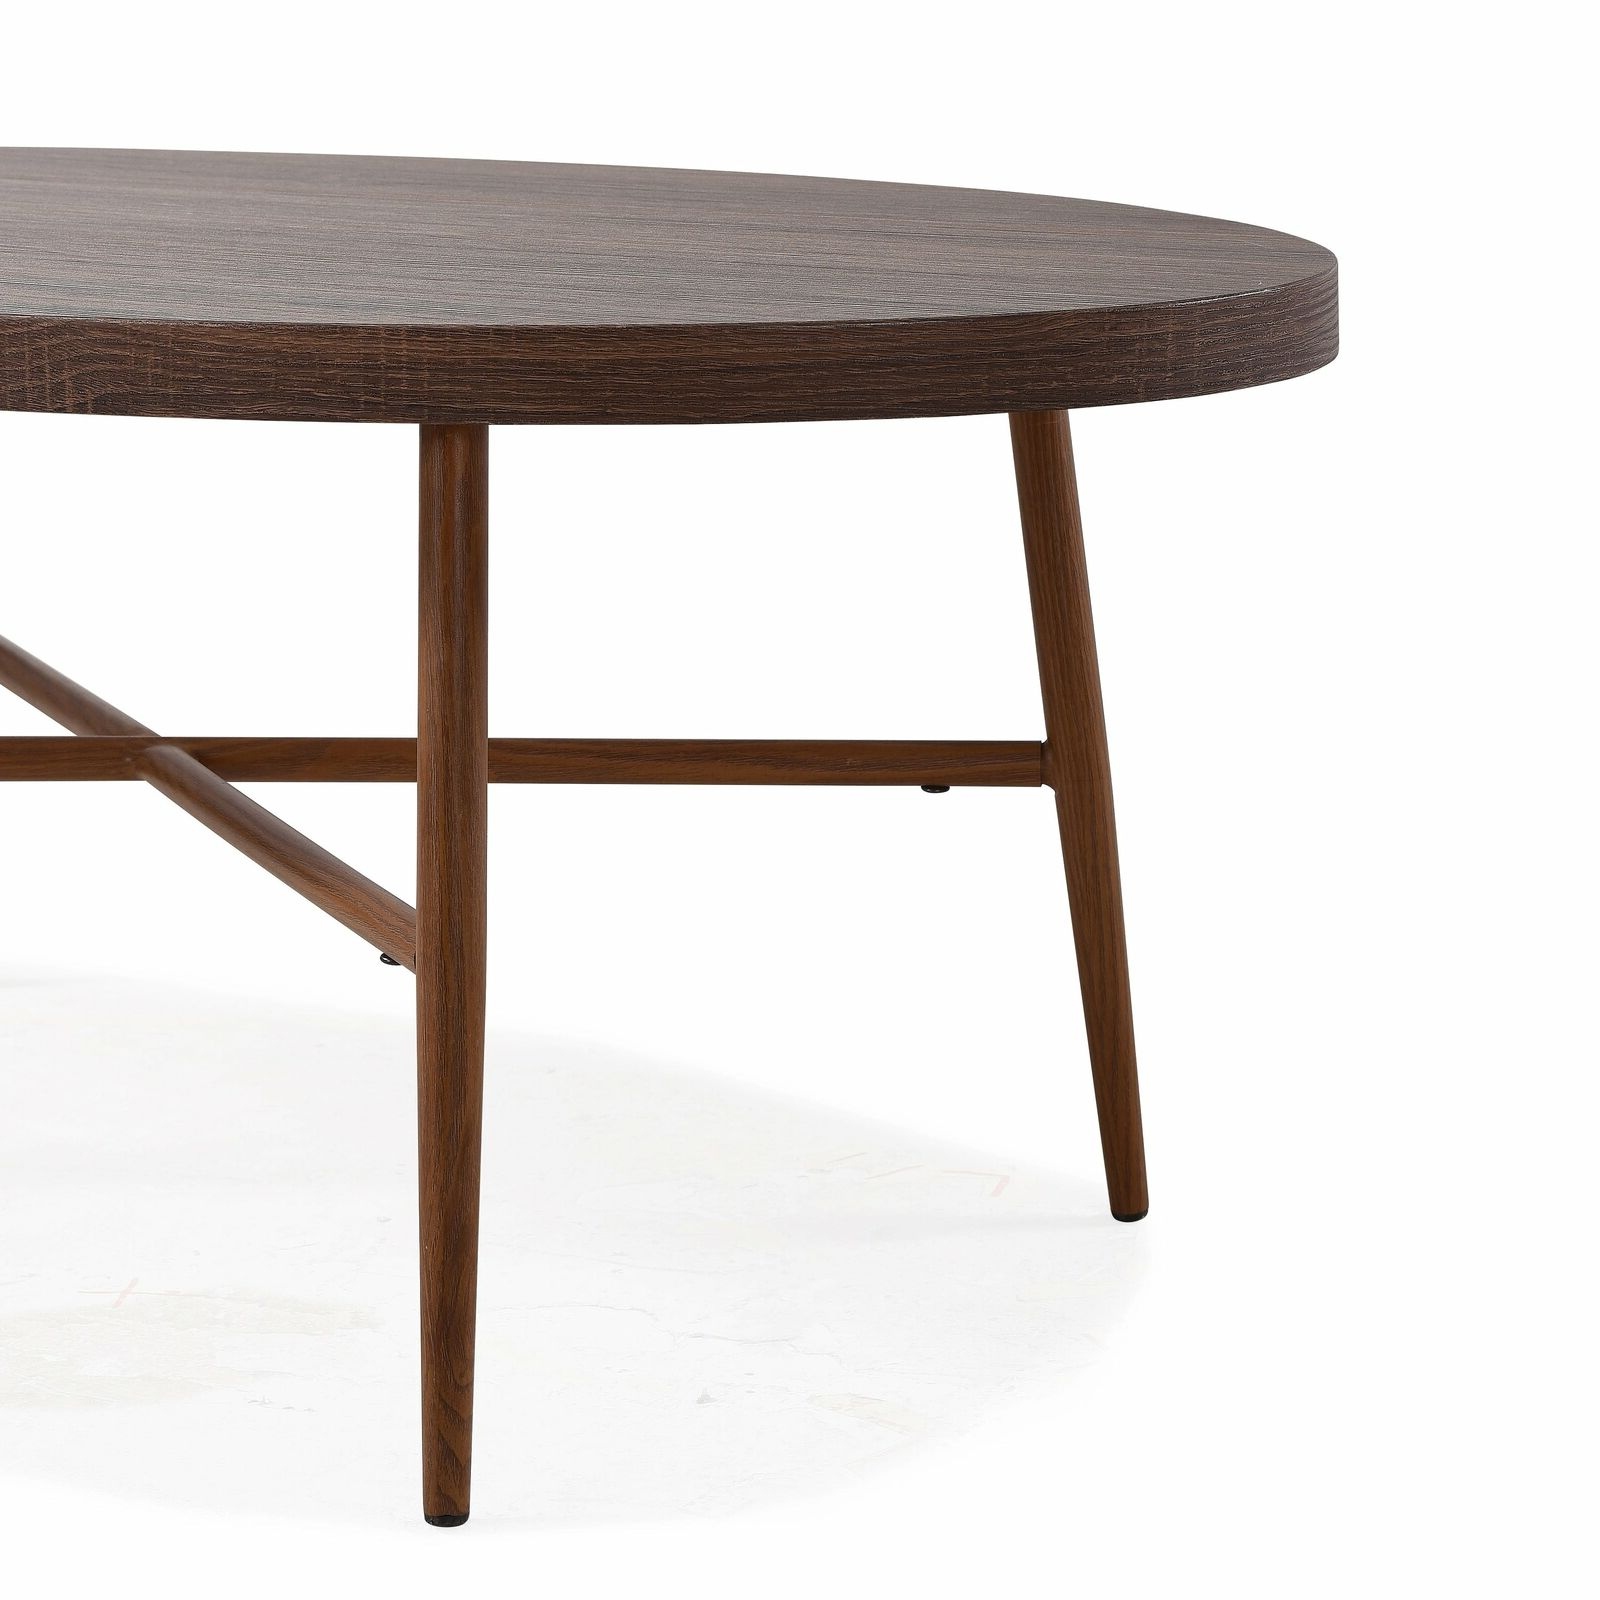 Most Recent Handy Living Miami White Oval Coffee Tables With Brown Metal Legs In Handy Living Miami Brown Oval Coffee Table With Brown Metal Brown (View 18 of 20)